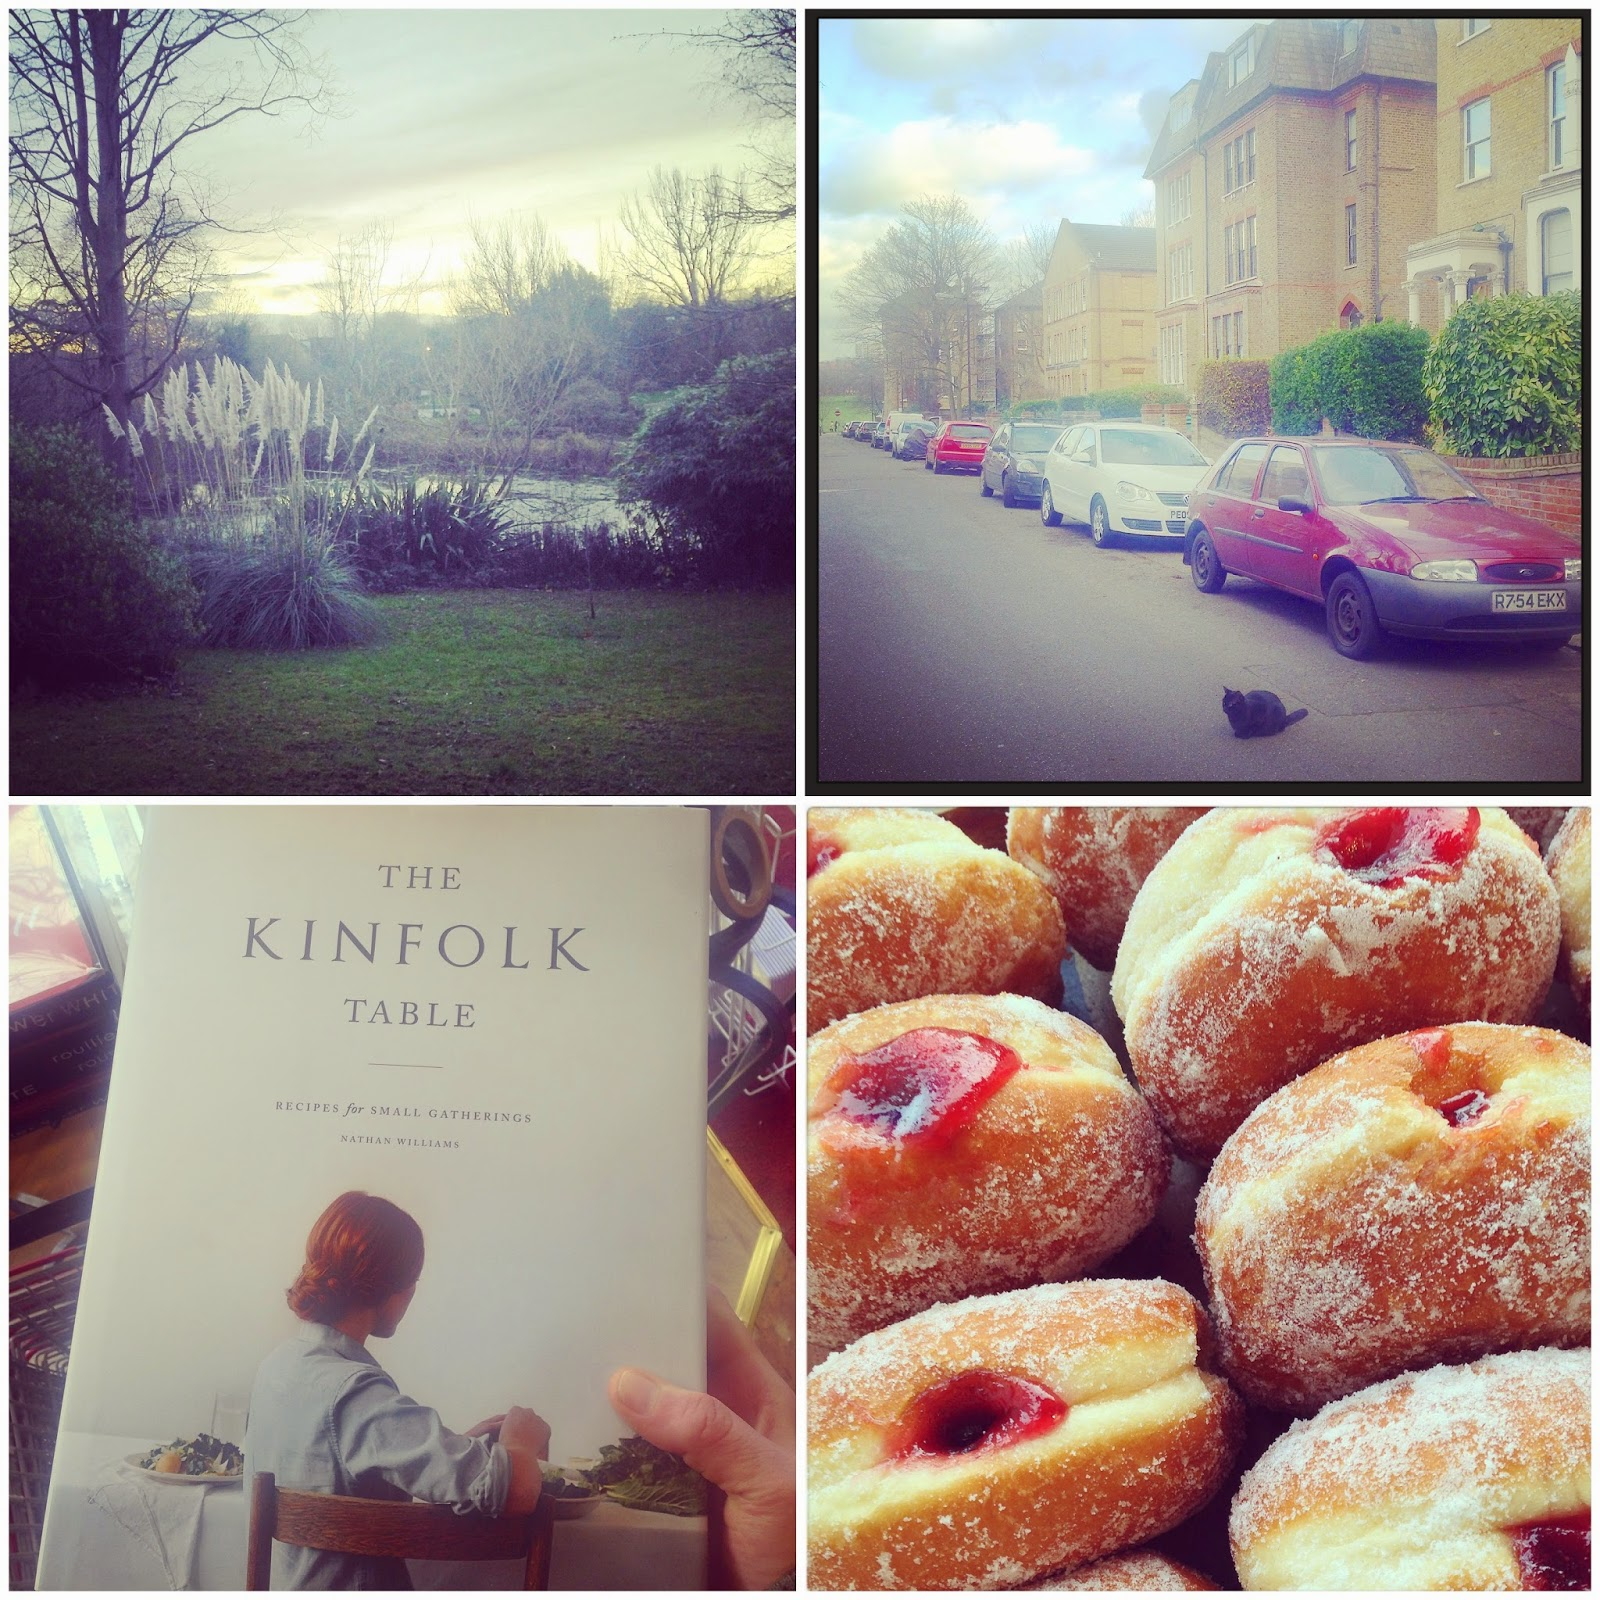 Wells Park, The Gardens in East Dulwich, Doughnuts and The Kinfolk Table